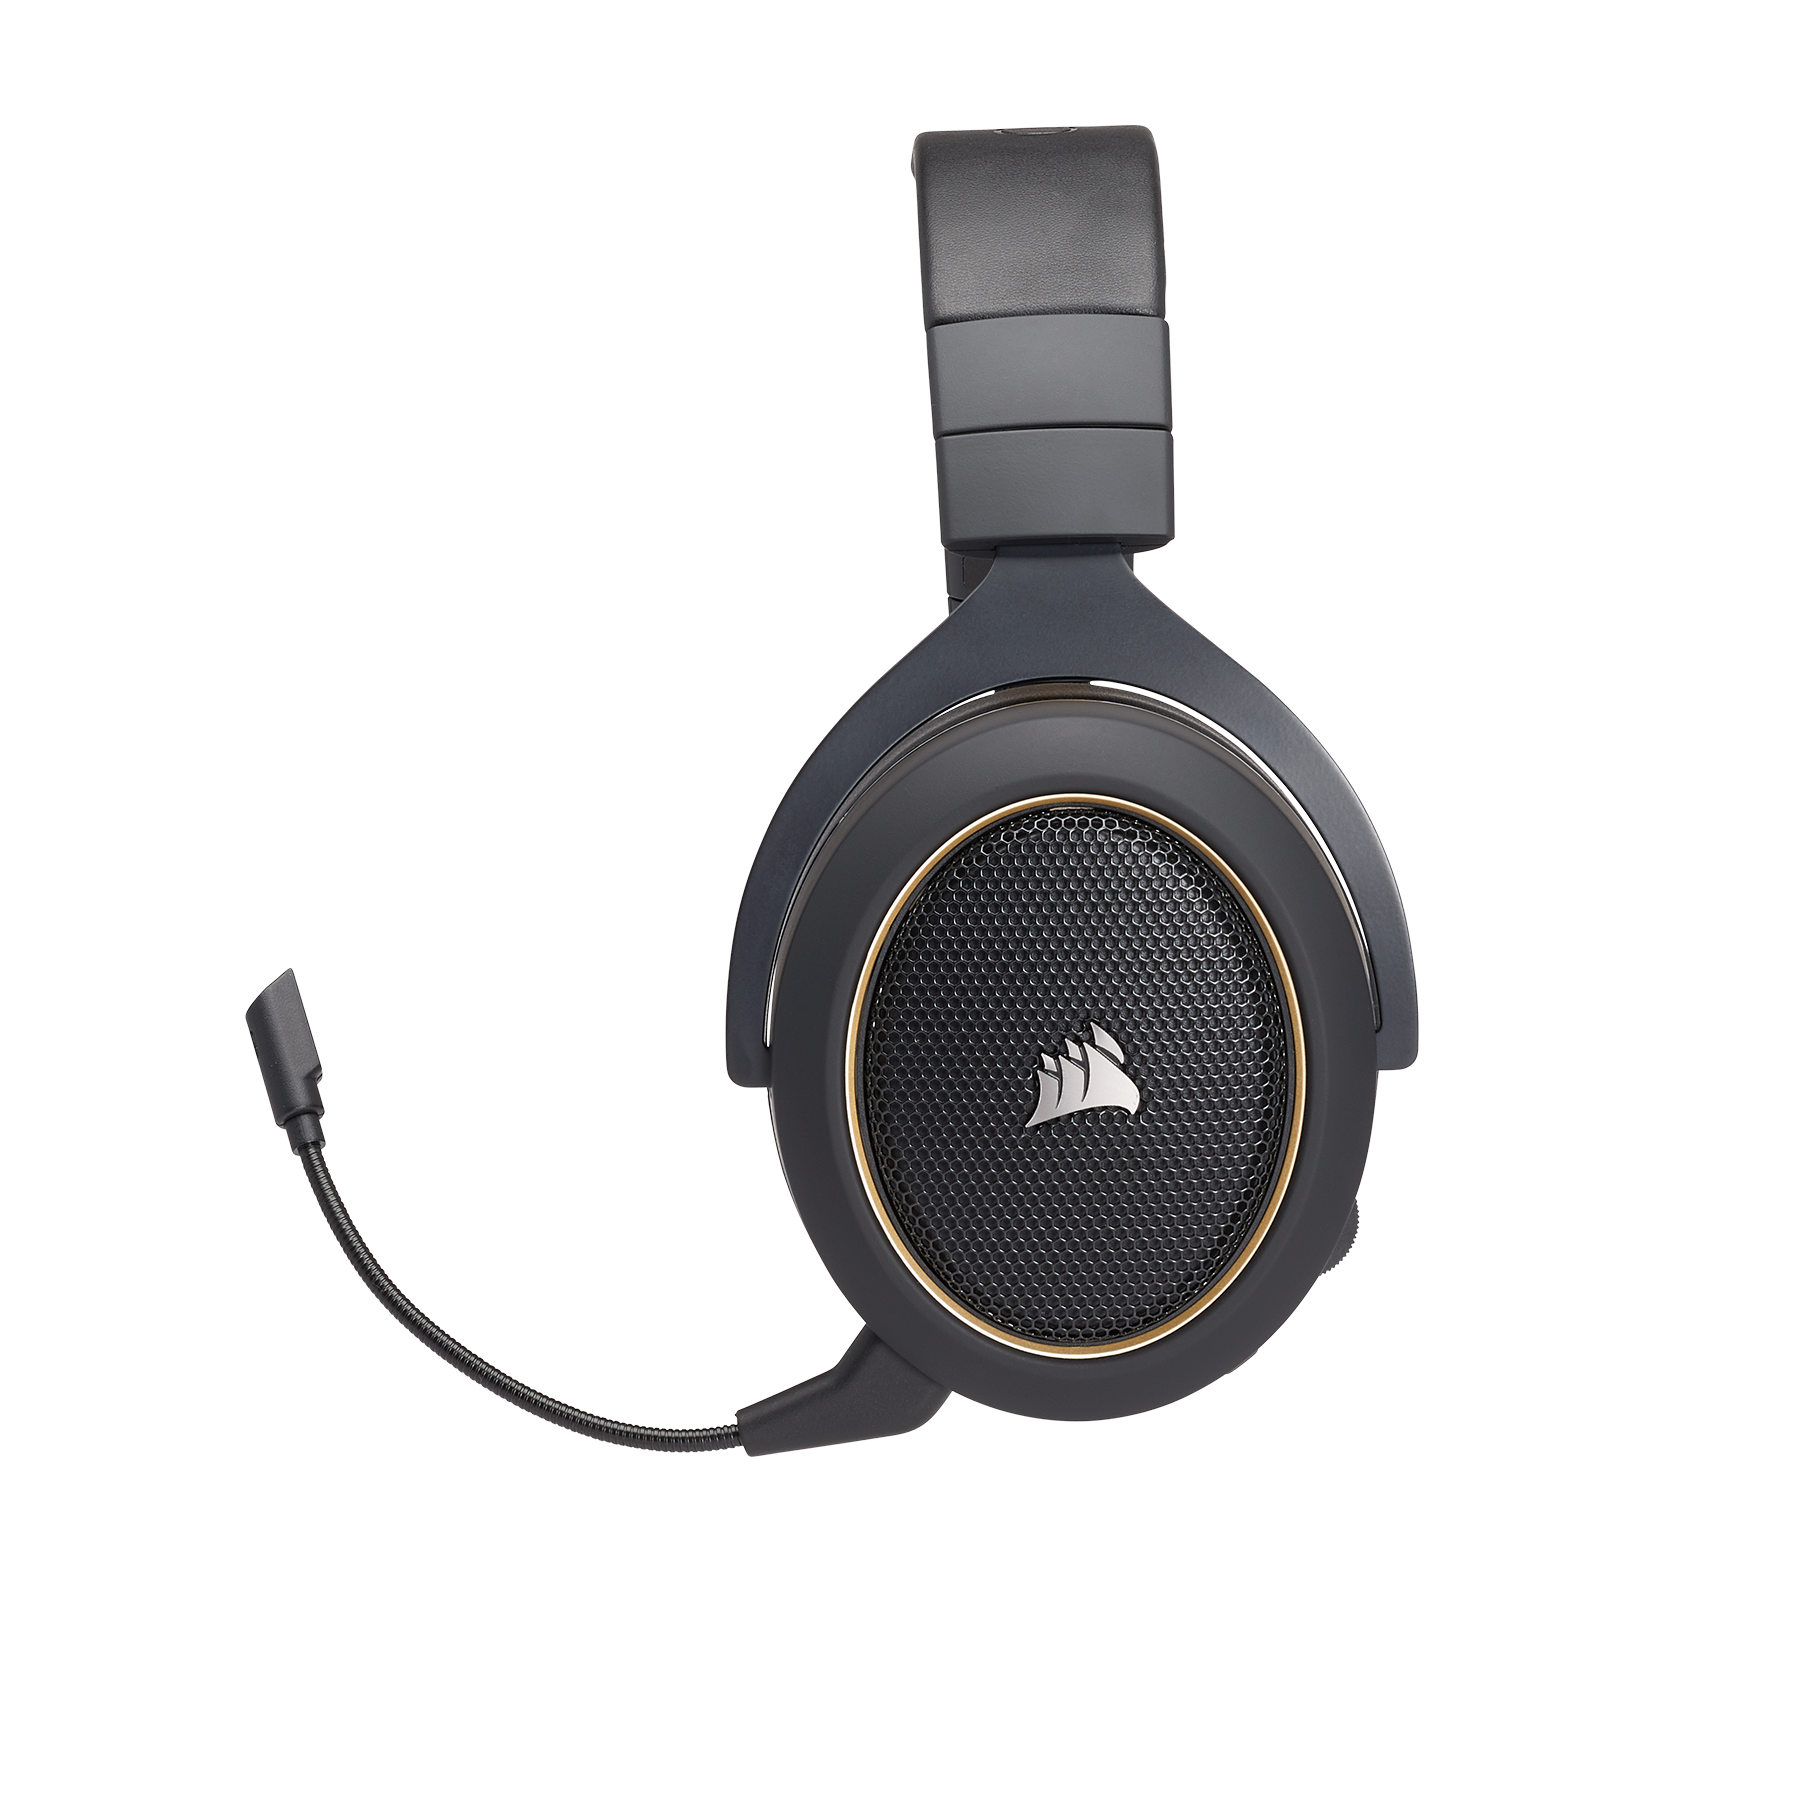 Corsair Hs70 Se Wireless Gaming Headset With 71 Surround Sound Two Simple Relay Based Motorcycle Alarms